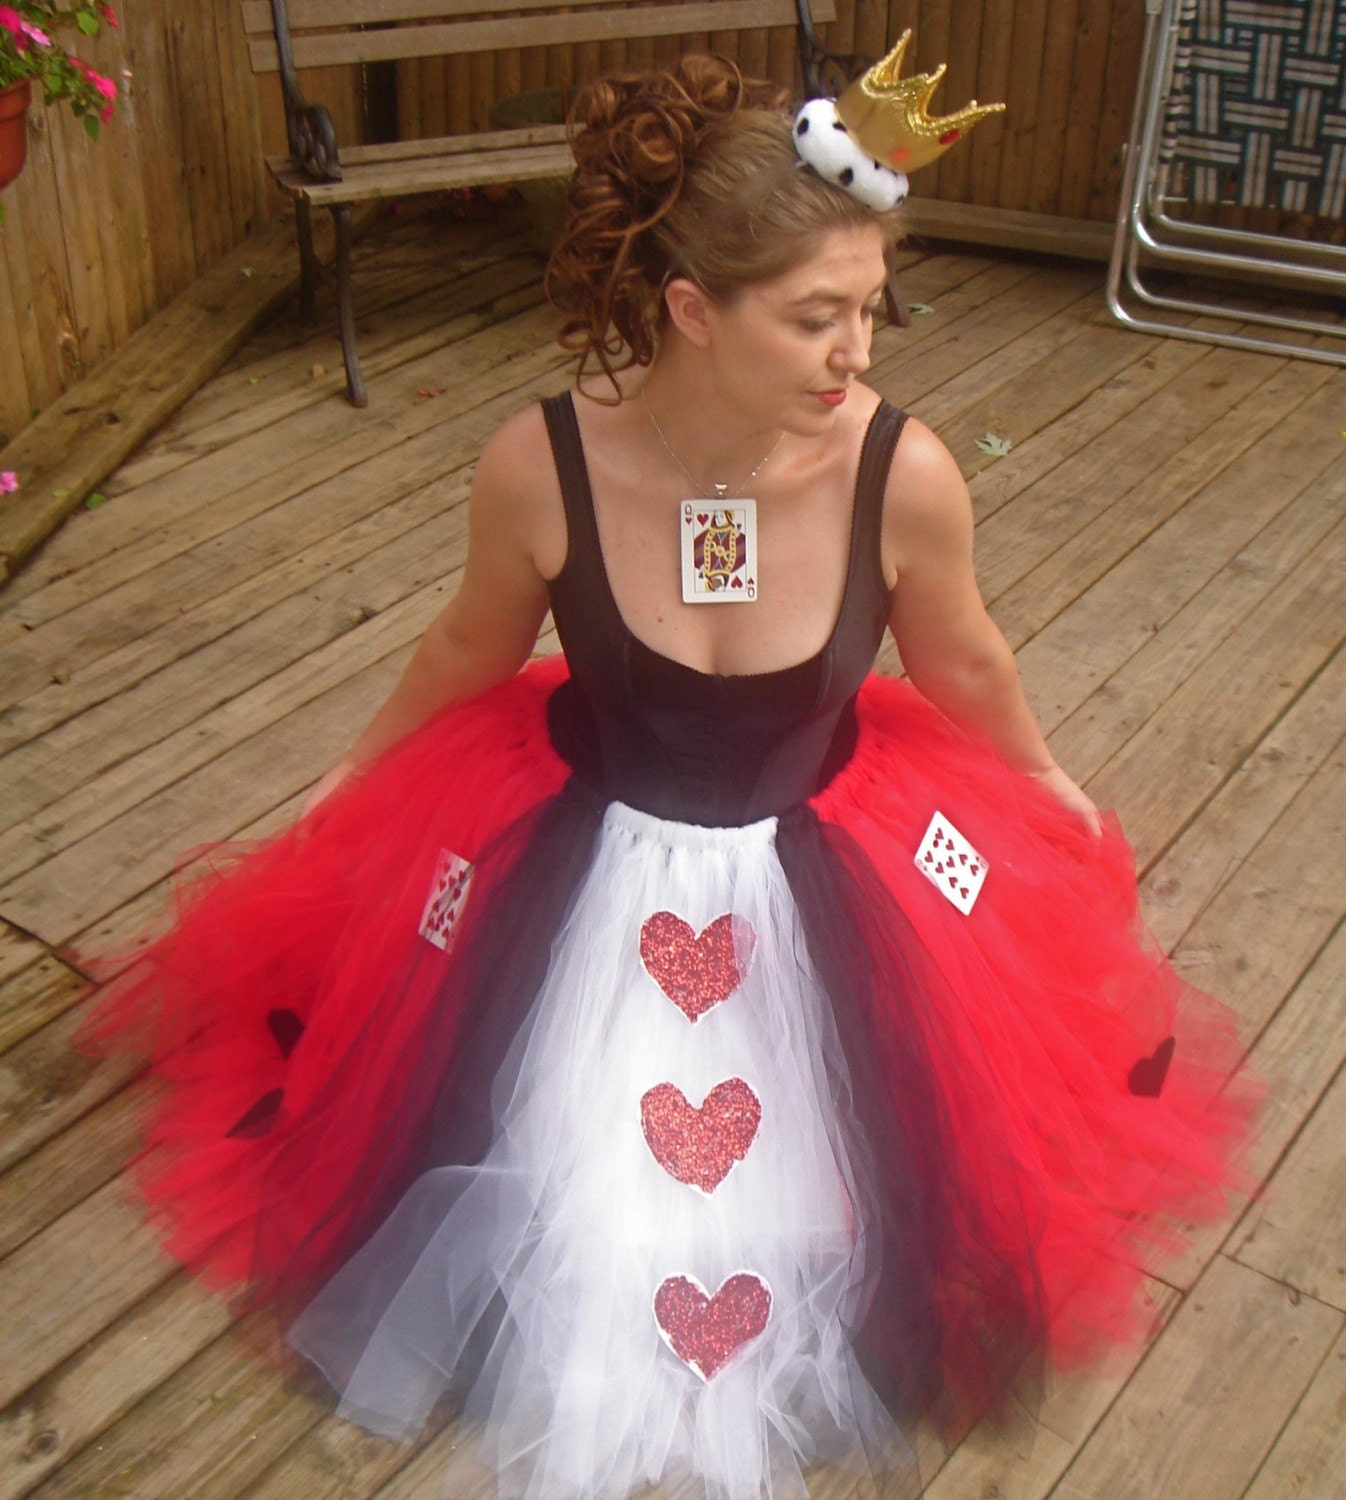 queen of hearts adult boutique tutu skirt costume. Black Bedroom Furniture Sets. Home Design Ideas